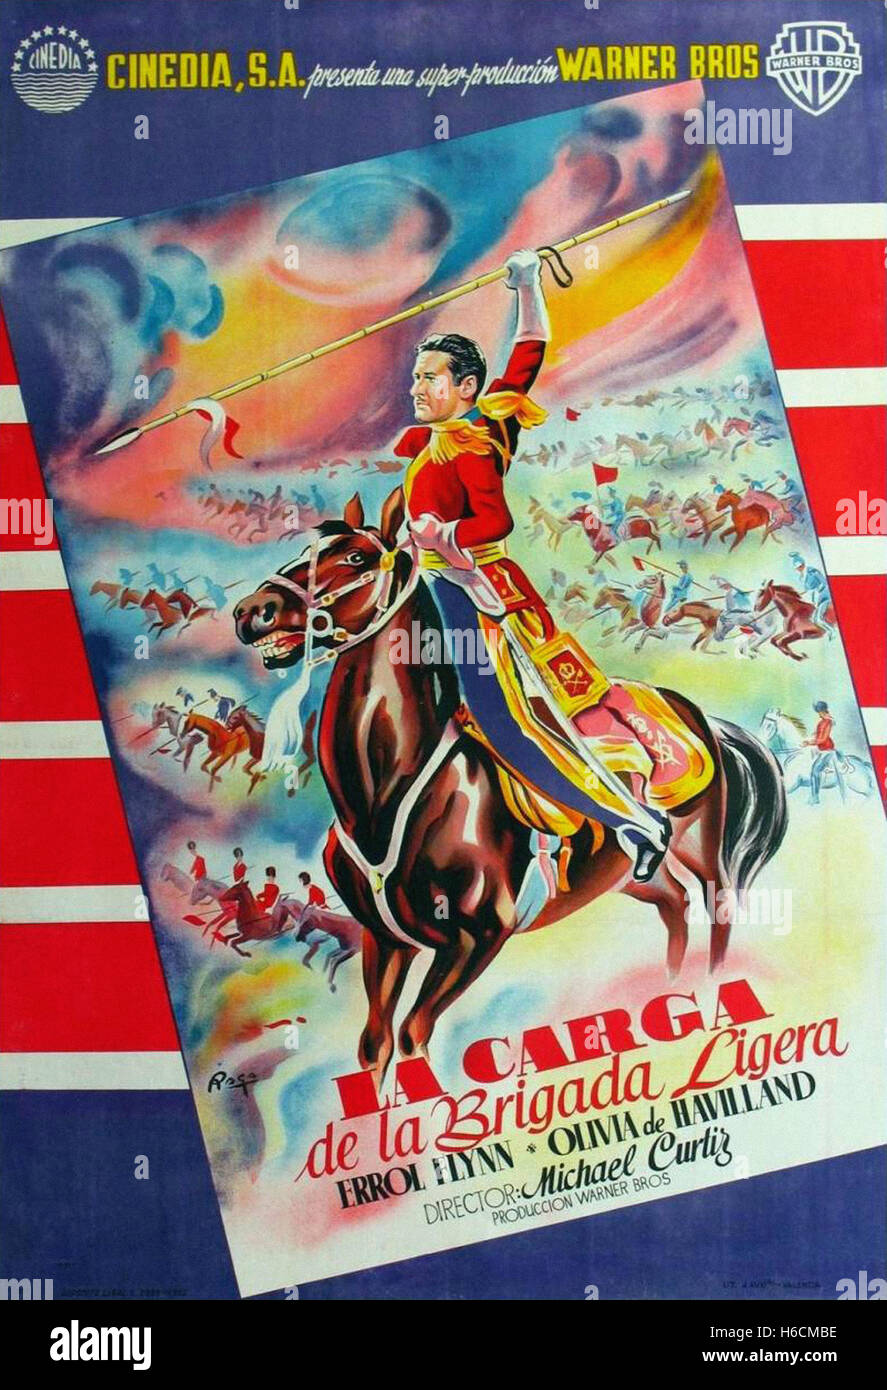 Charge of the Light Brigade, The (1936) - Spanish Movie Poster - - Stock Image